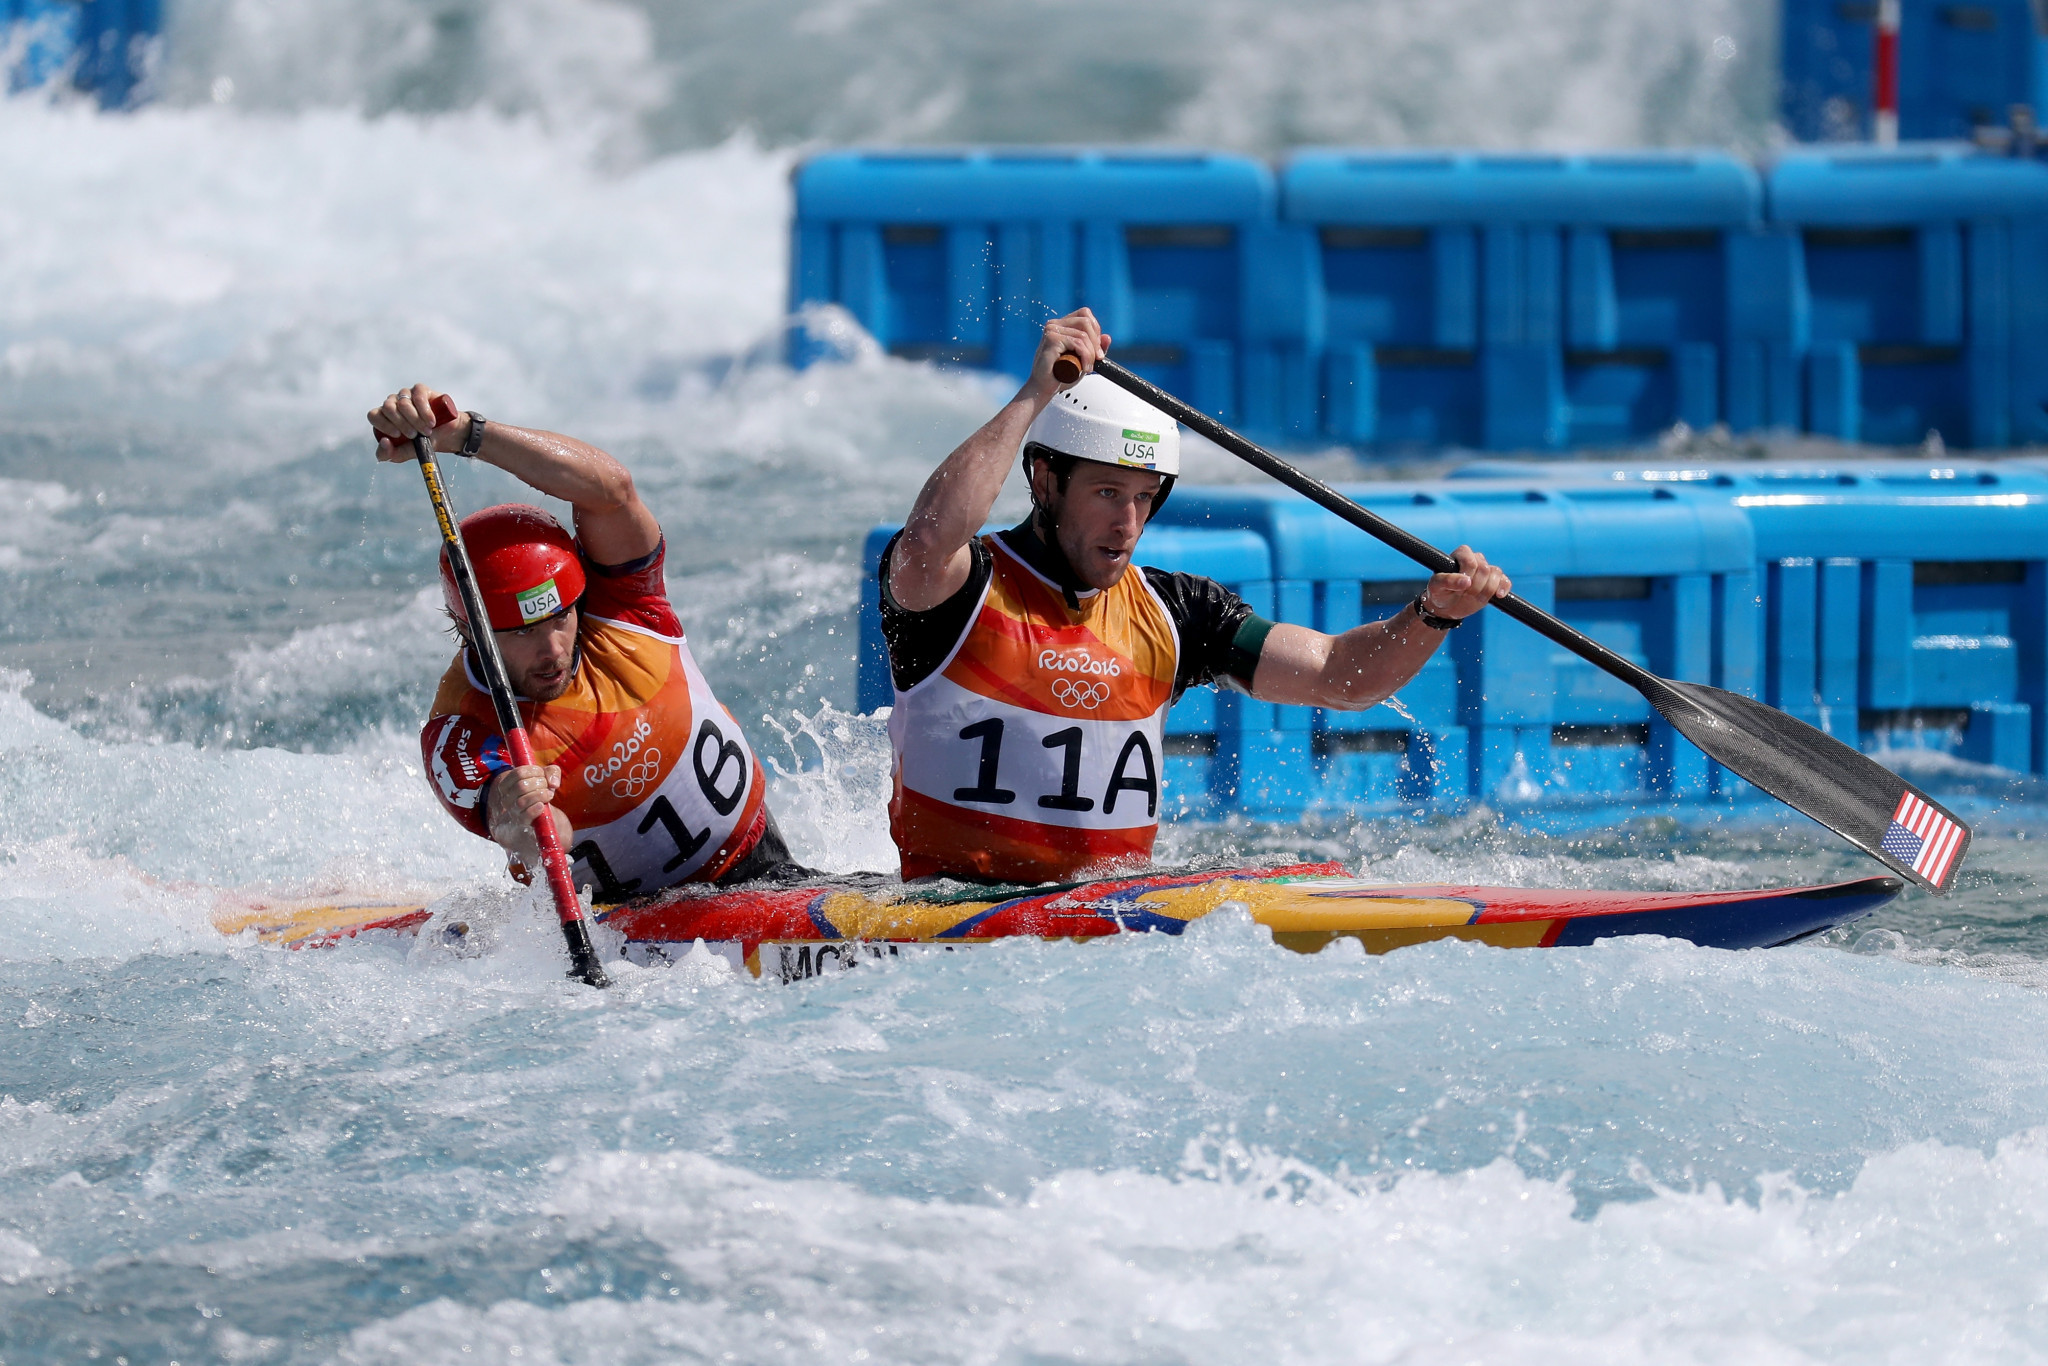 Exclusive: Rio 2016 canoe slalom site at Deodoro is first to re-open for legacy purposes